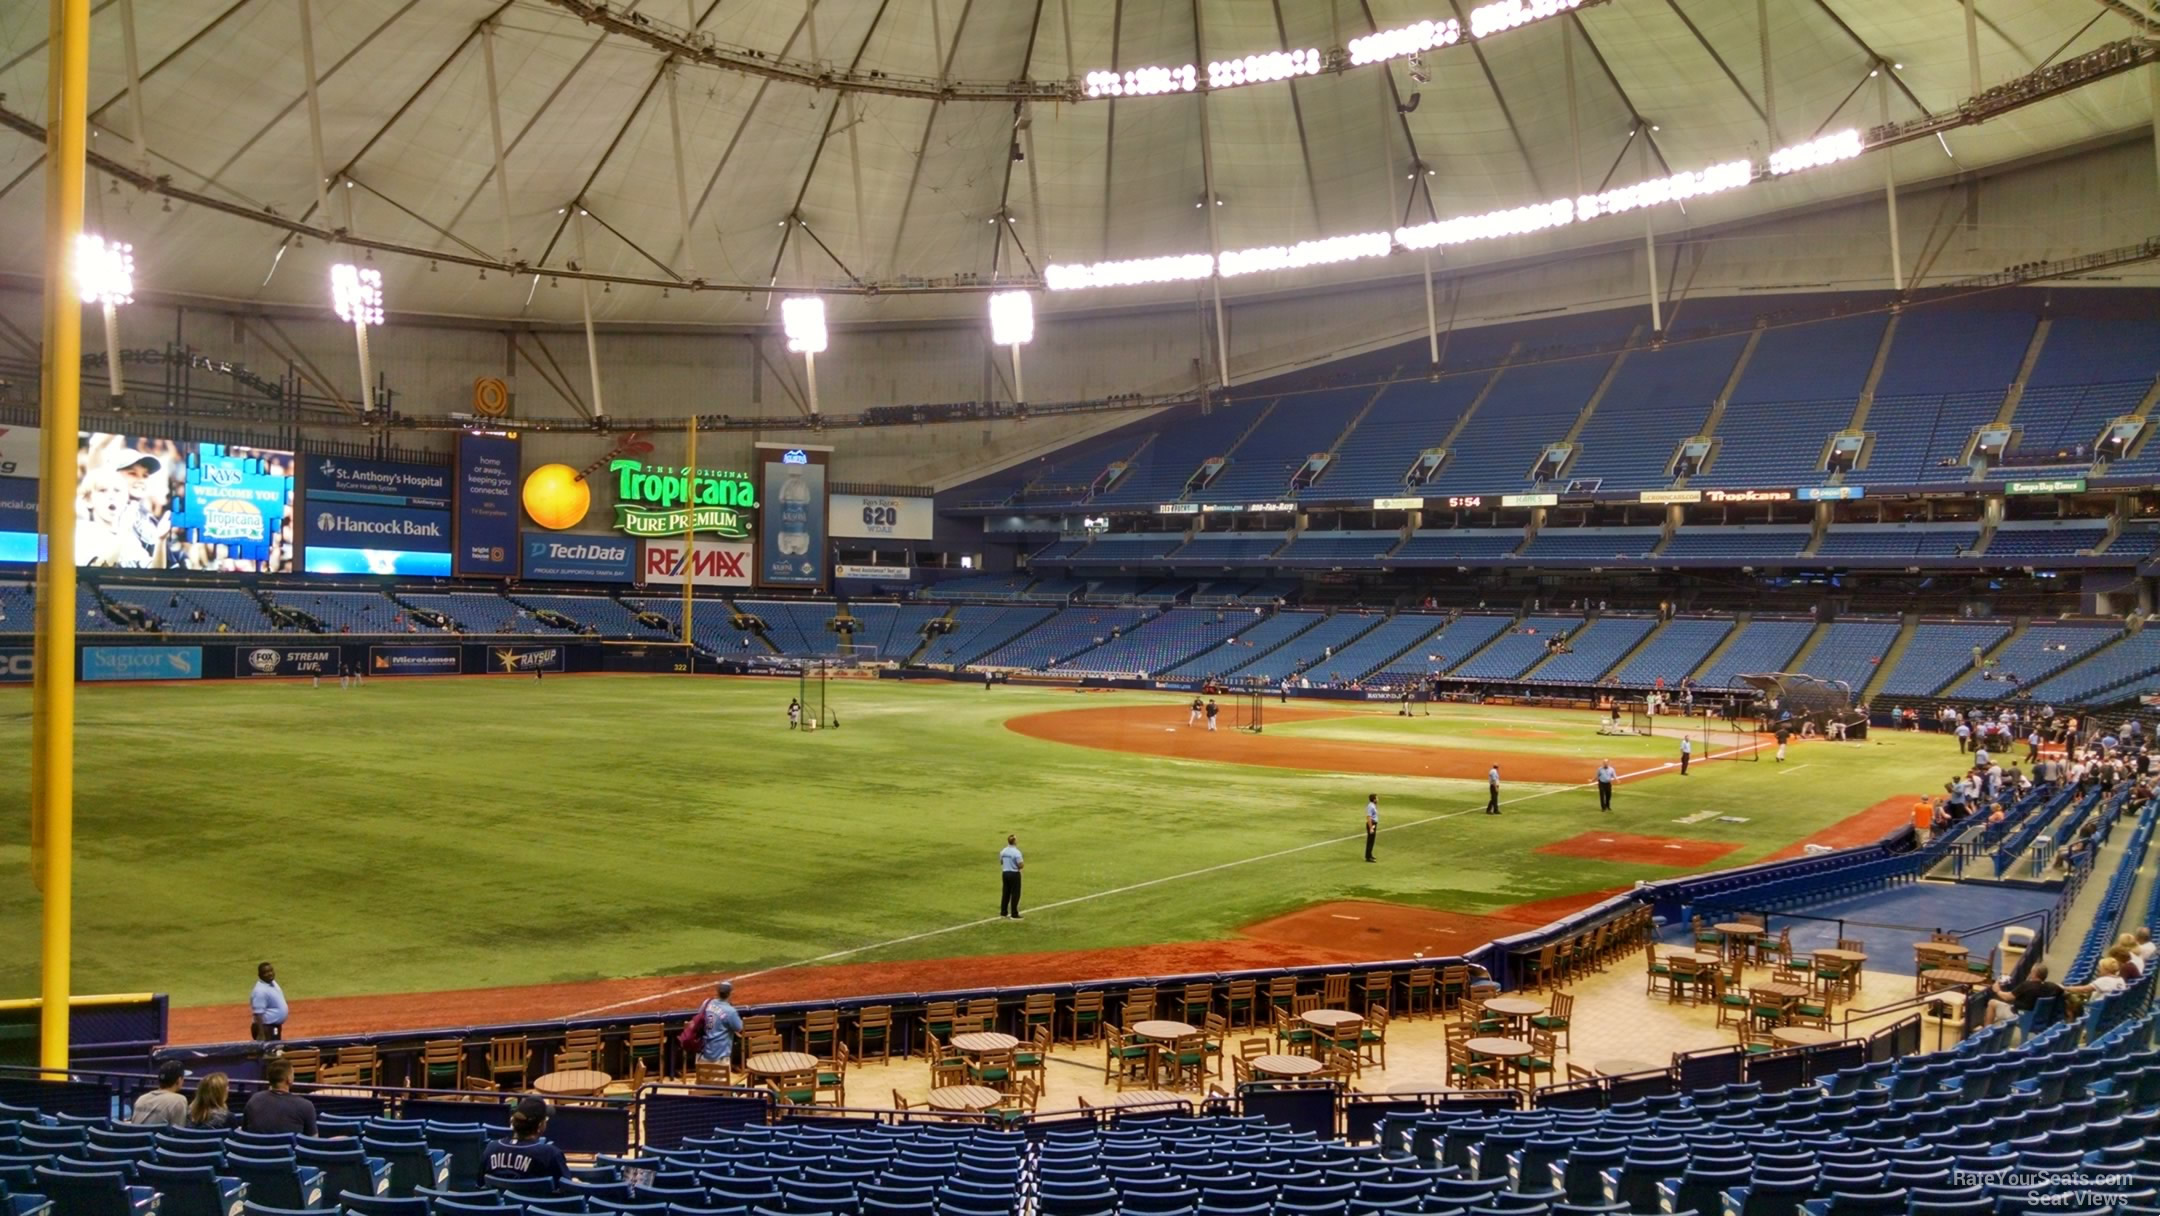 Section 135 Tampa Bay Rays